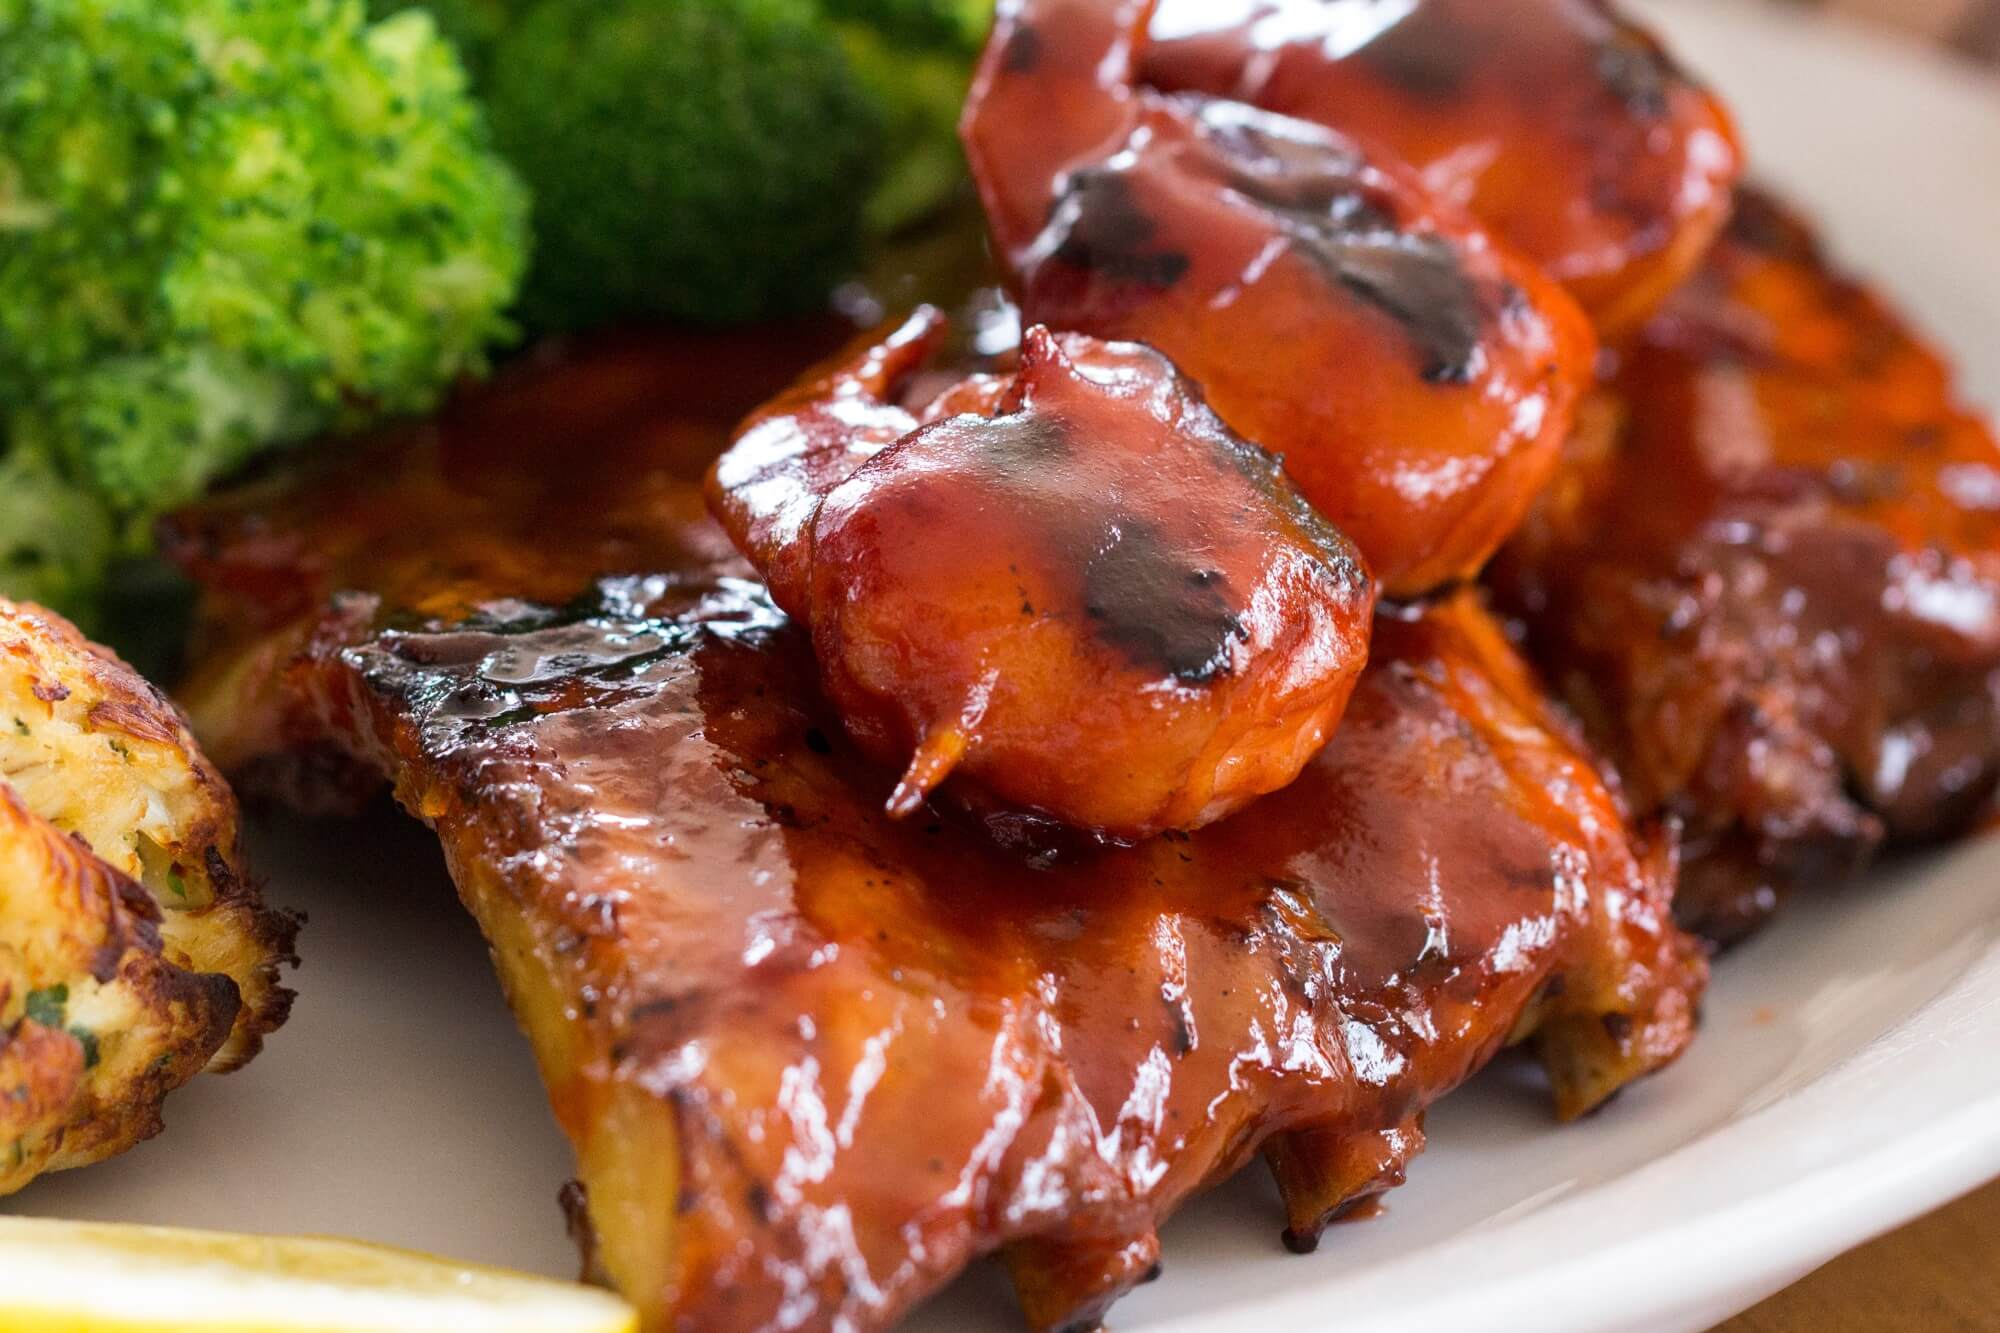 must-try menu items ribs